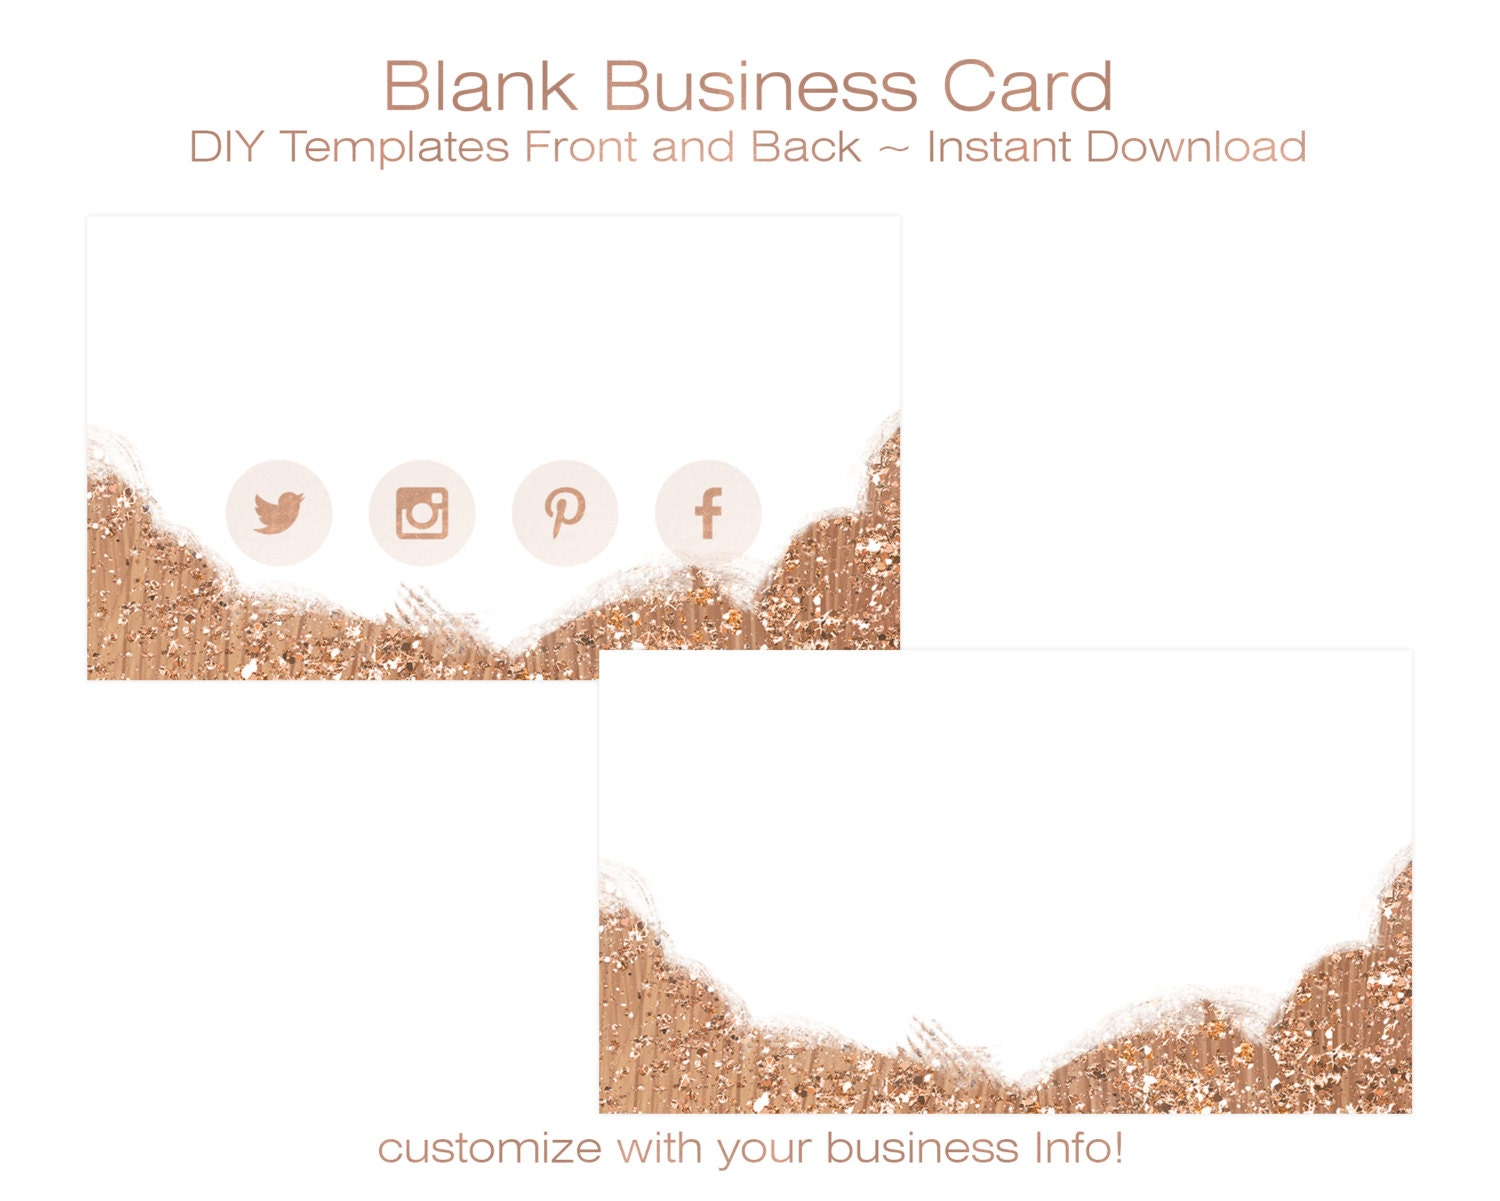 BUSINESS CARD Template DIY Blank Business Card Standard